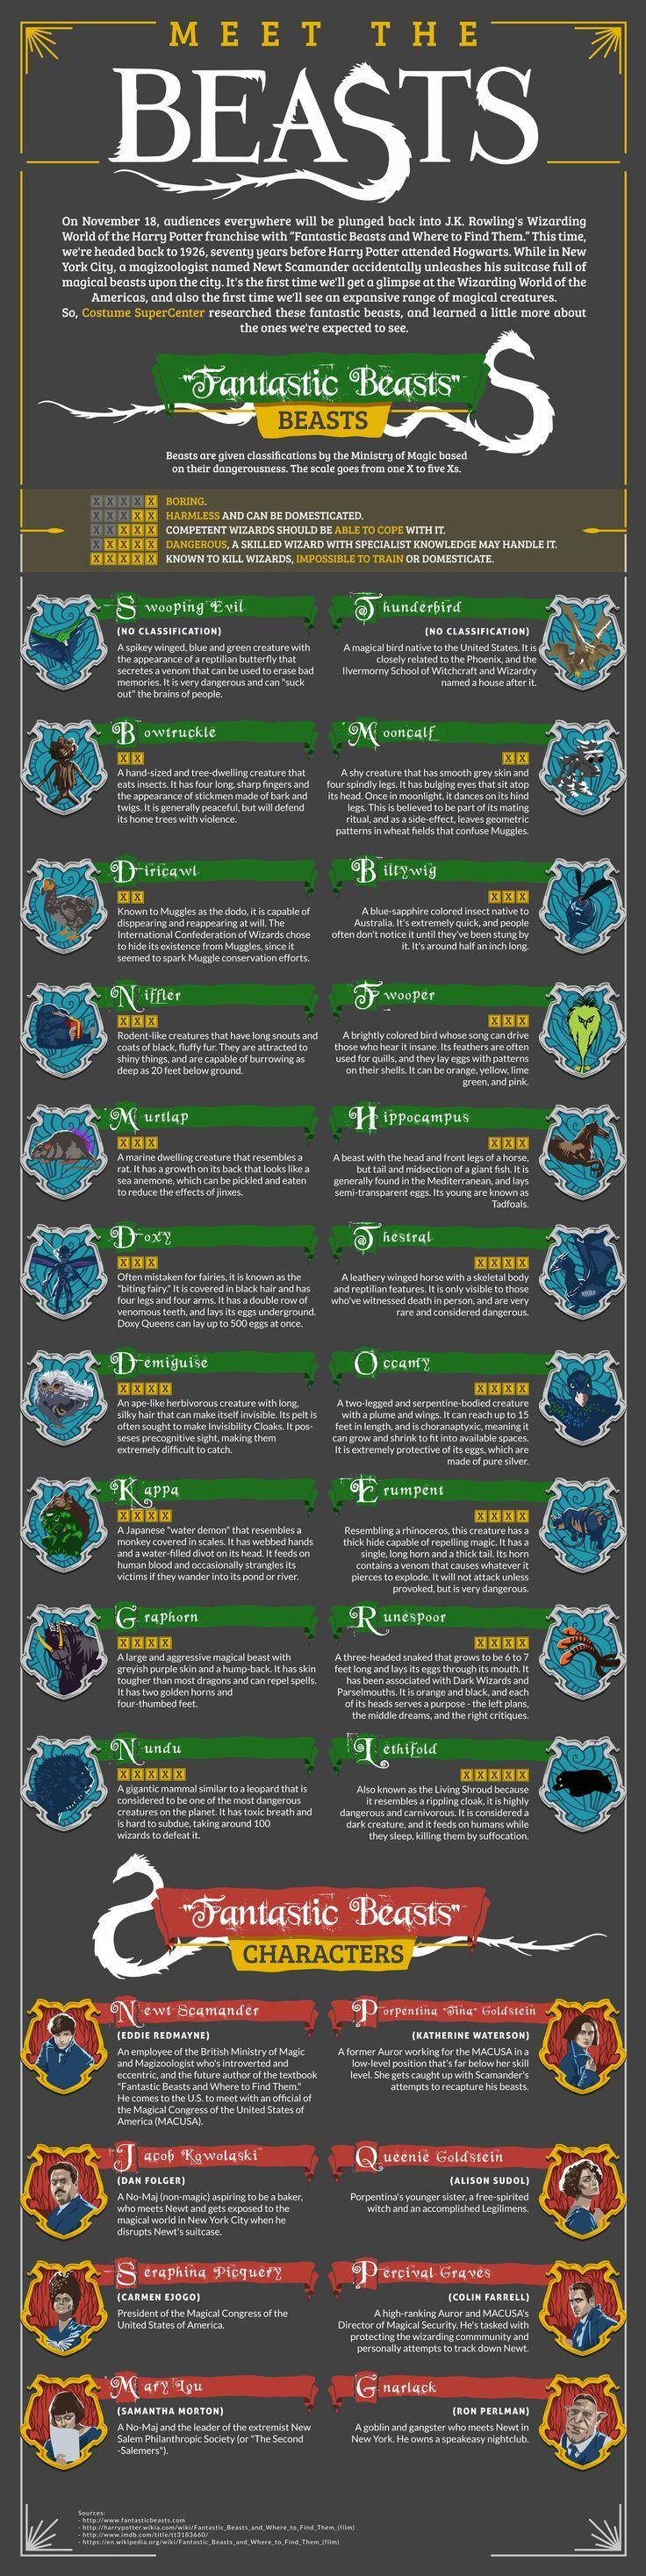 Fantastic Beasts and Where To Find Them: Meet the Beasts Infographic